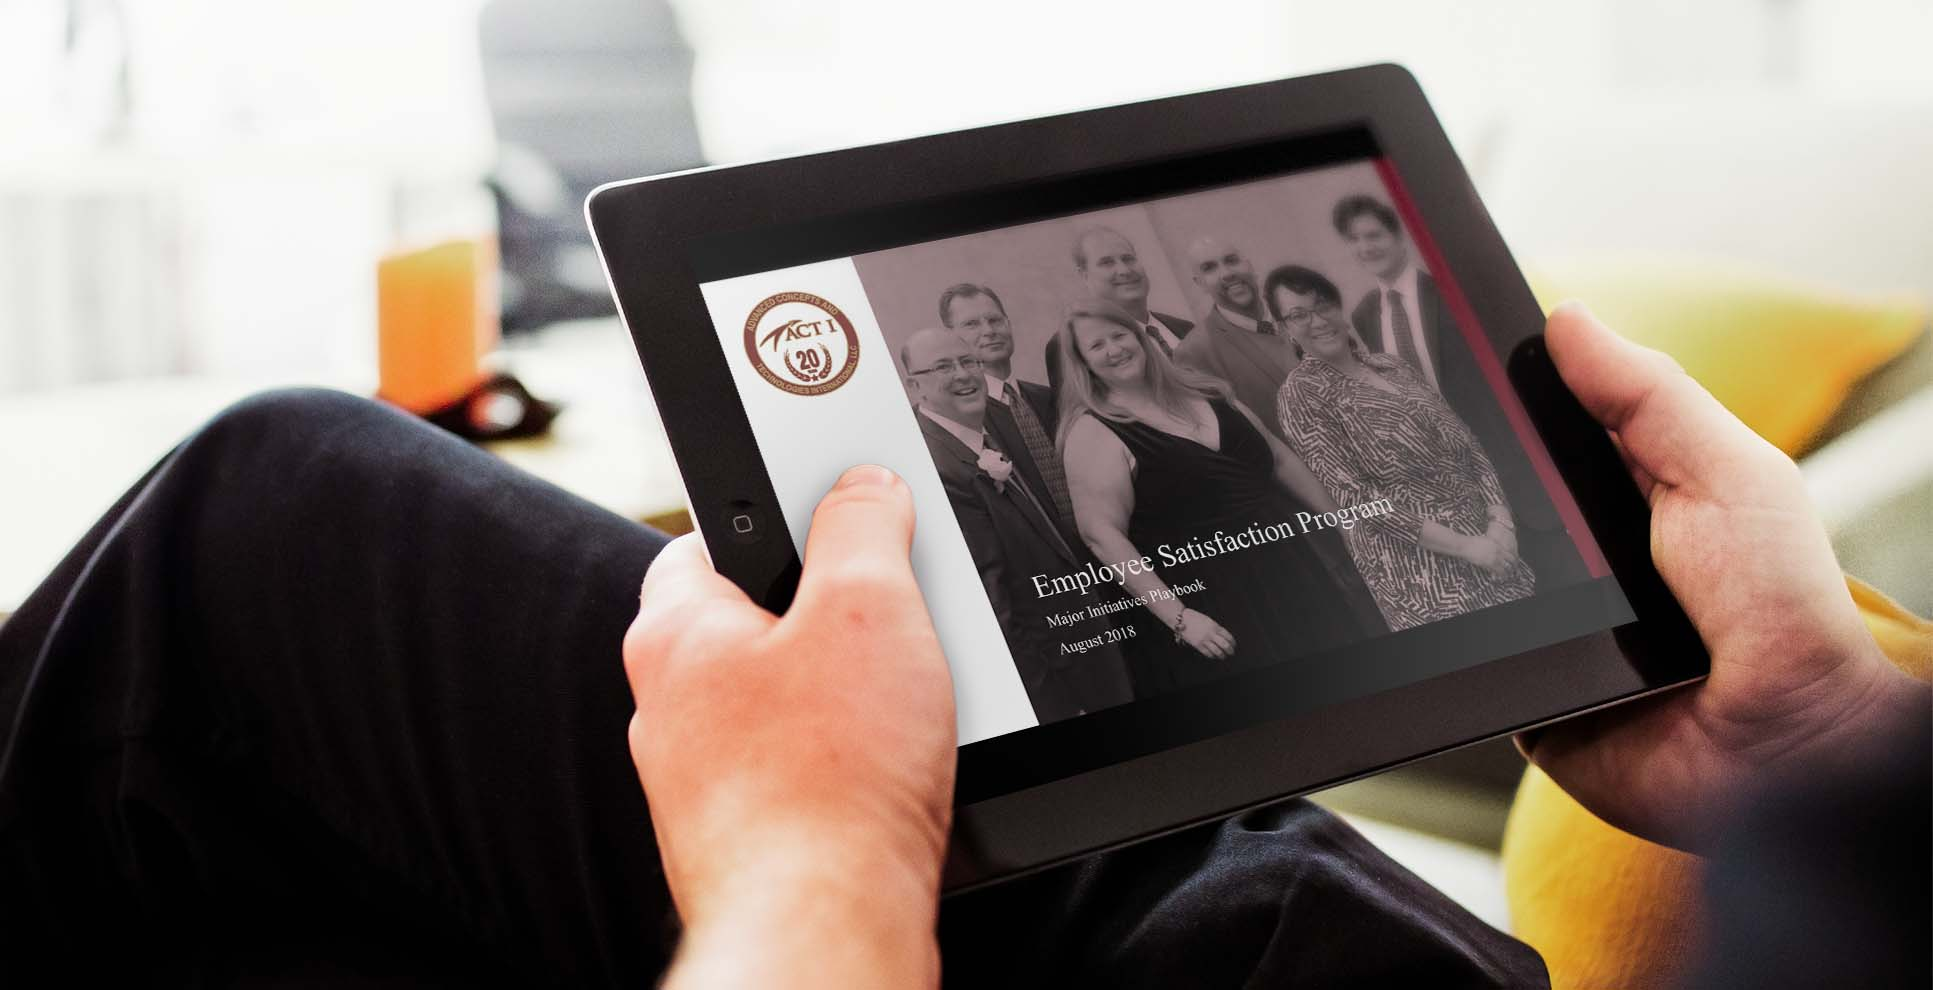 A person views an iPad with ACT I's Employee Satisfaction Program playbook on the screen